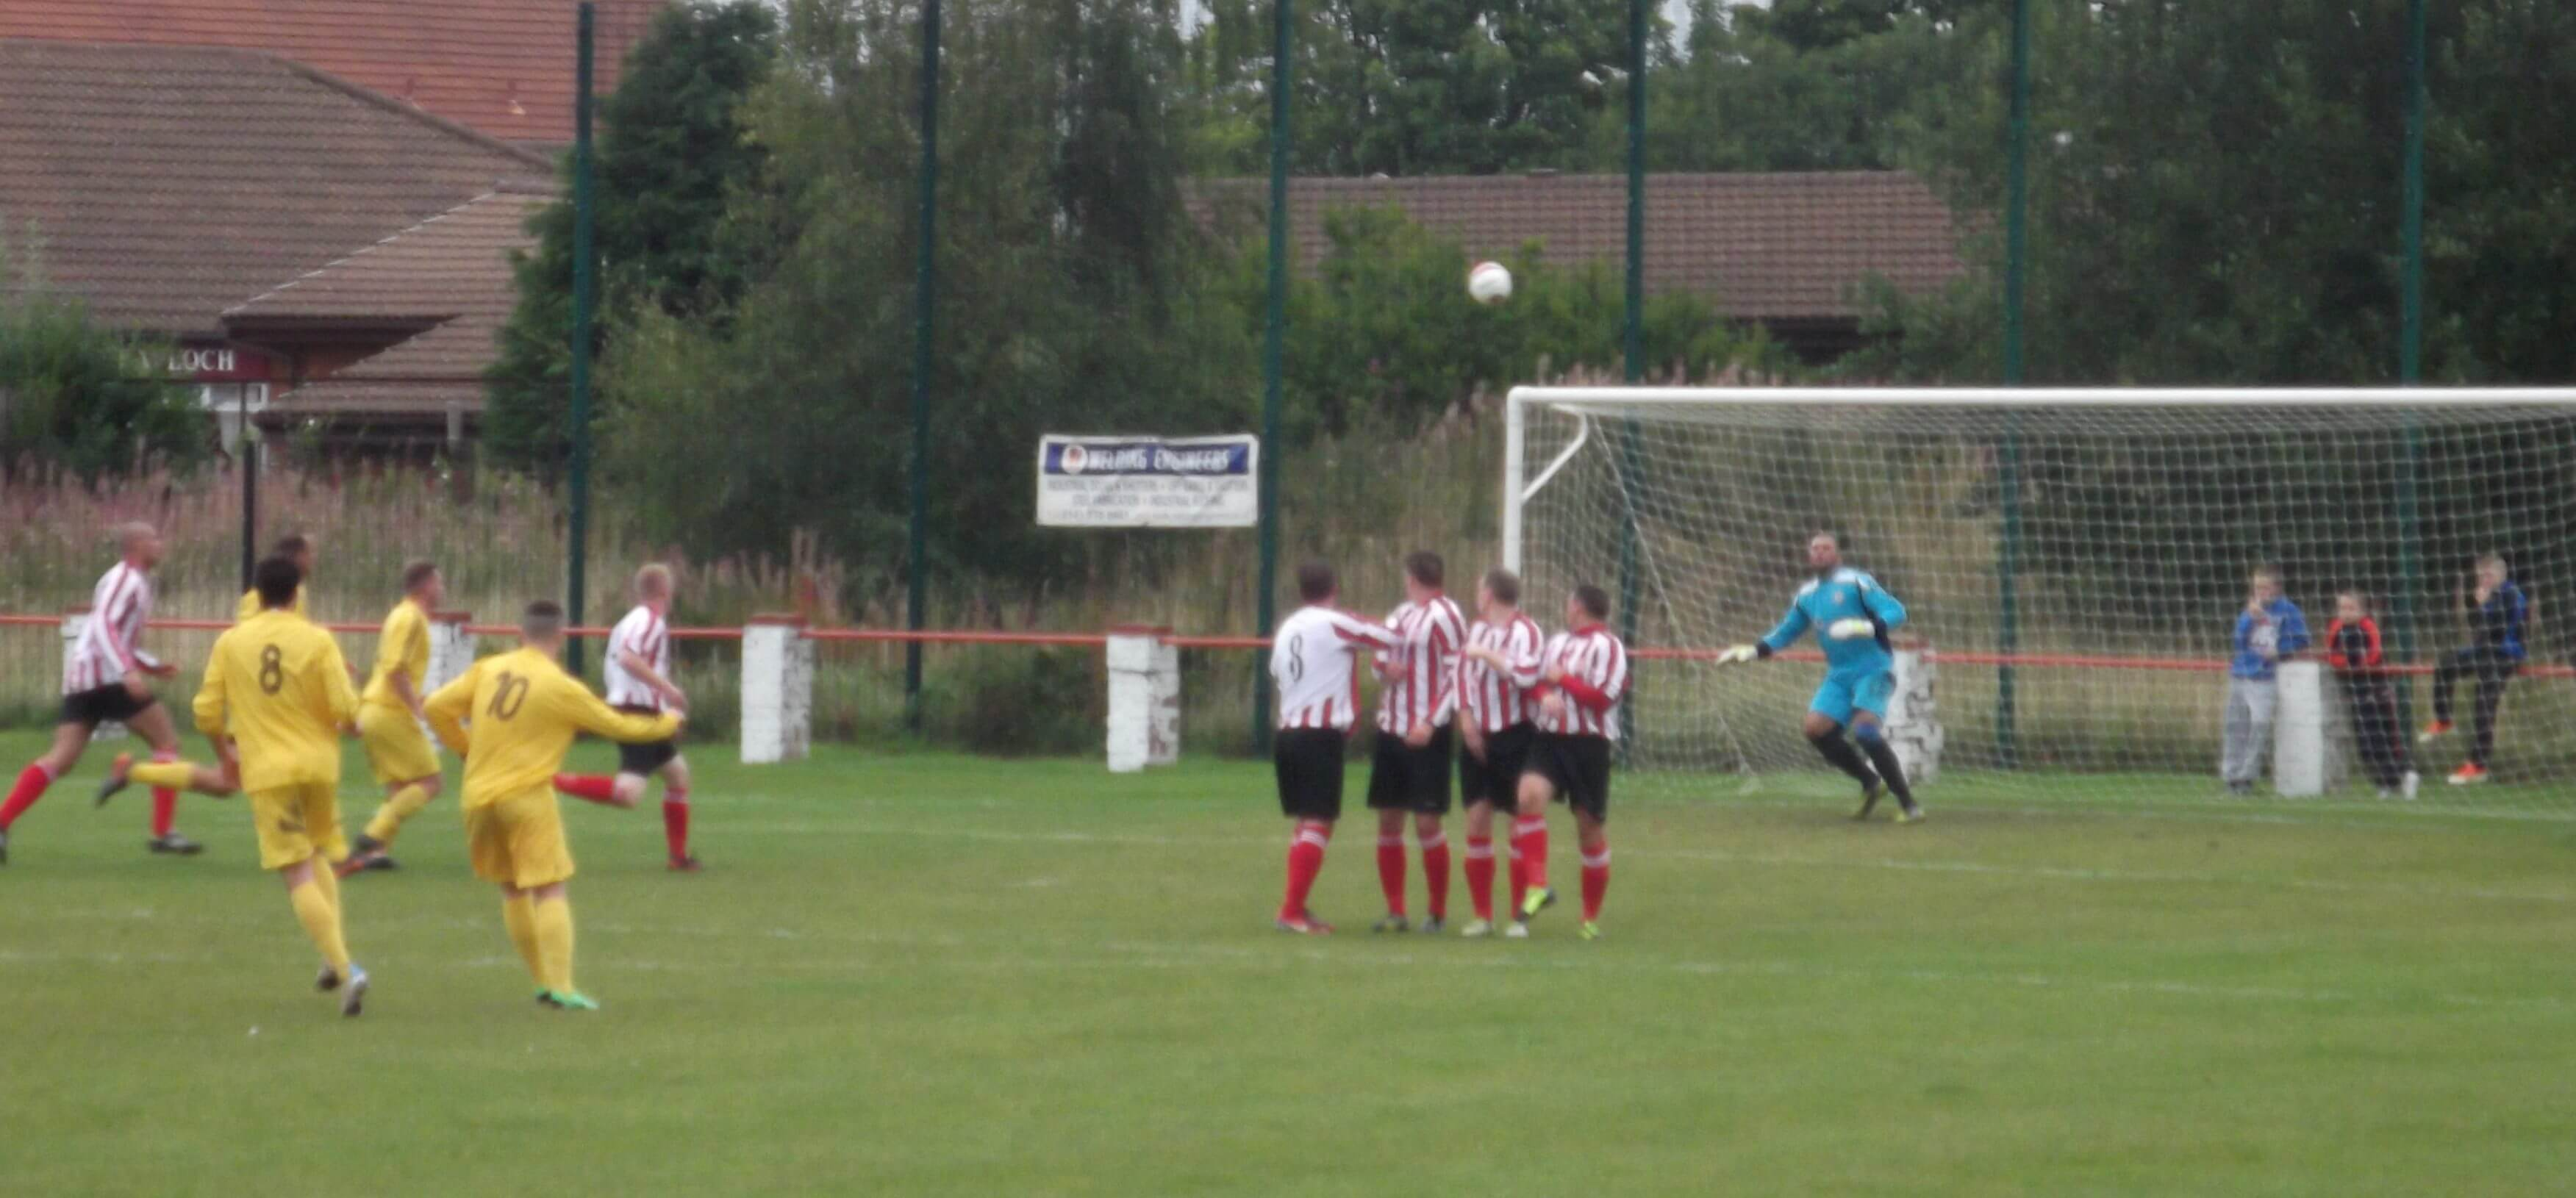 Thistle line up against Maryhill free kick that went close